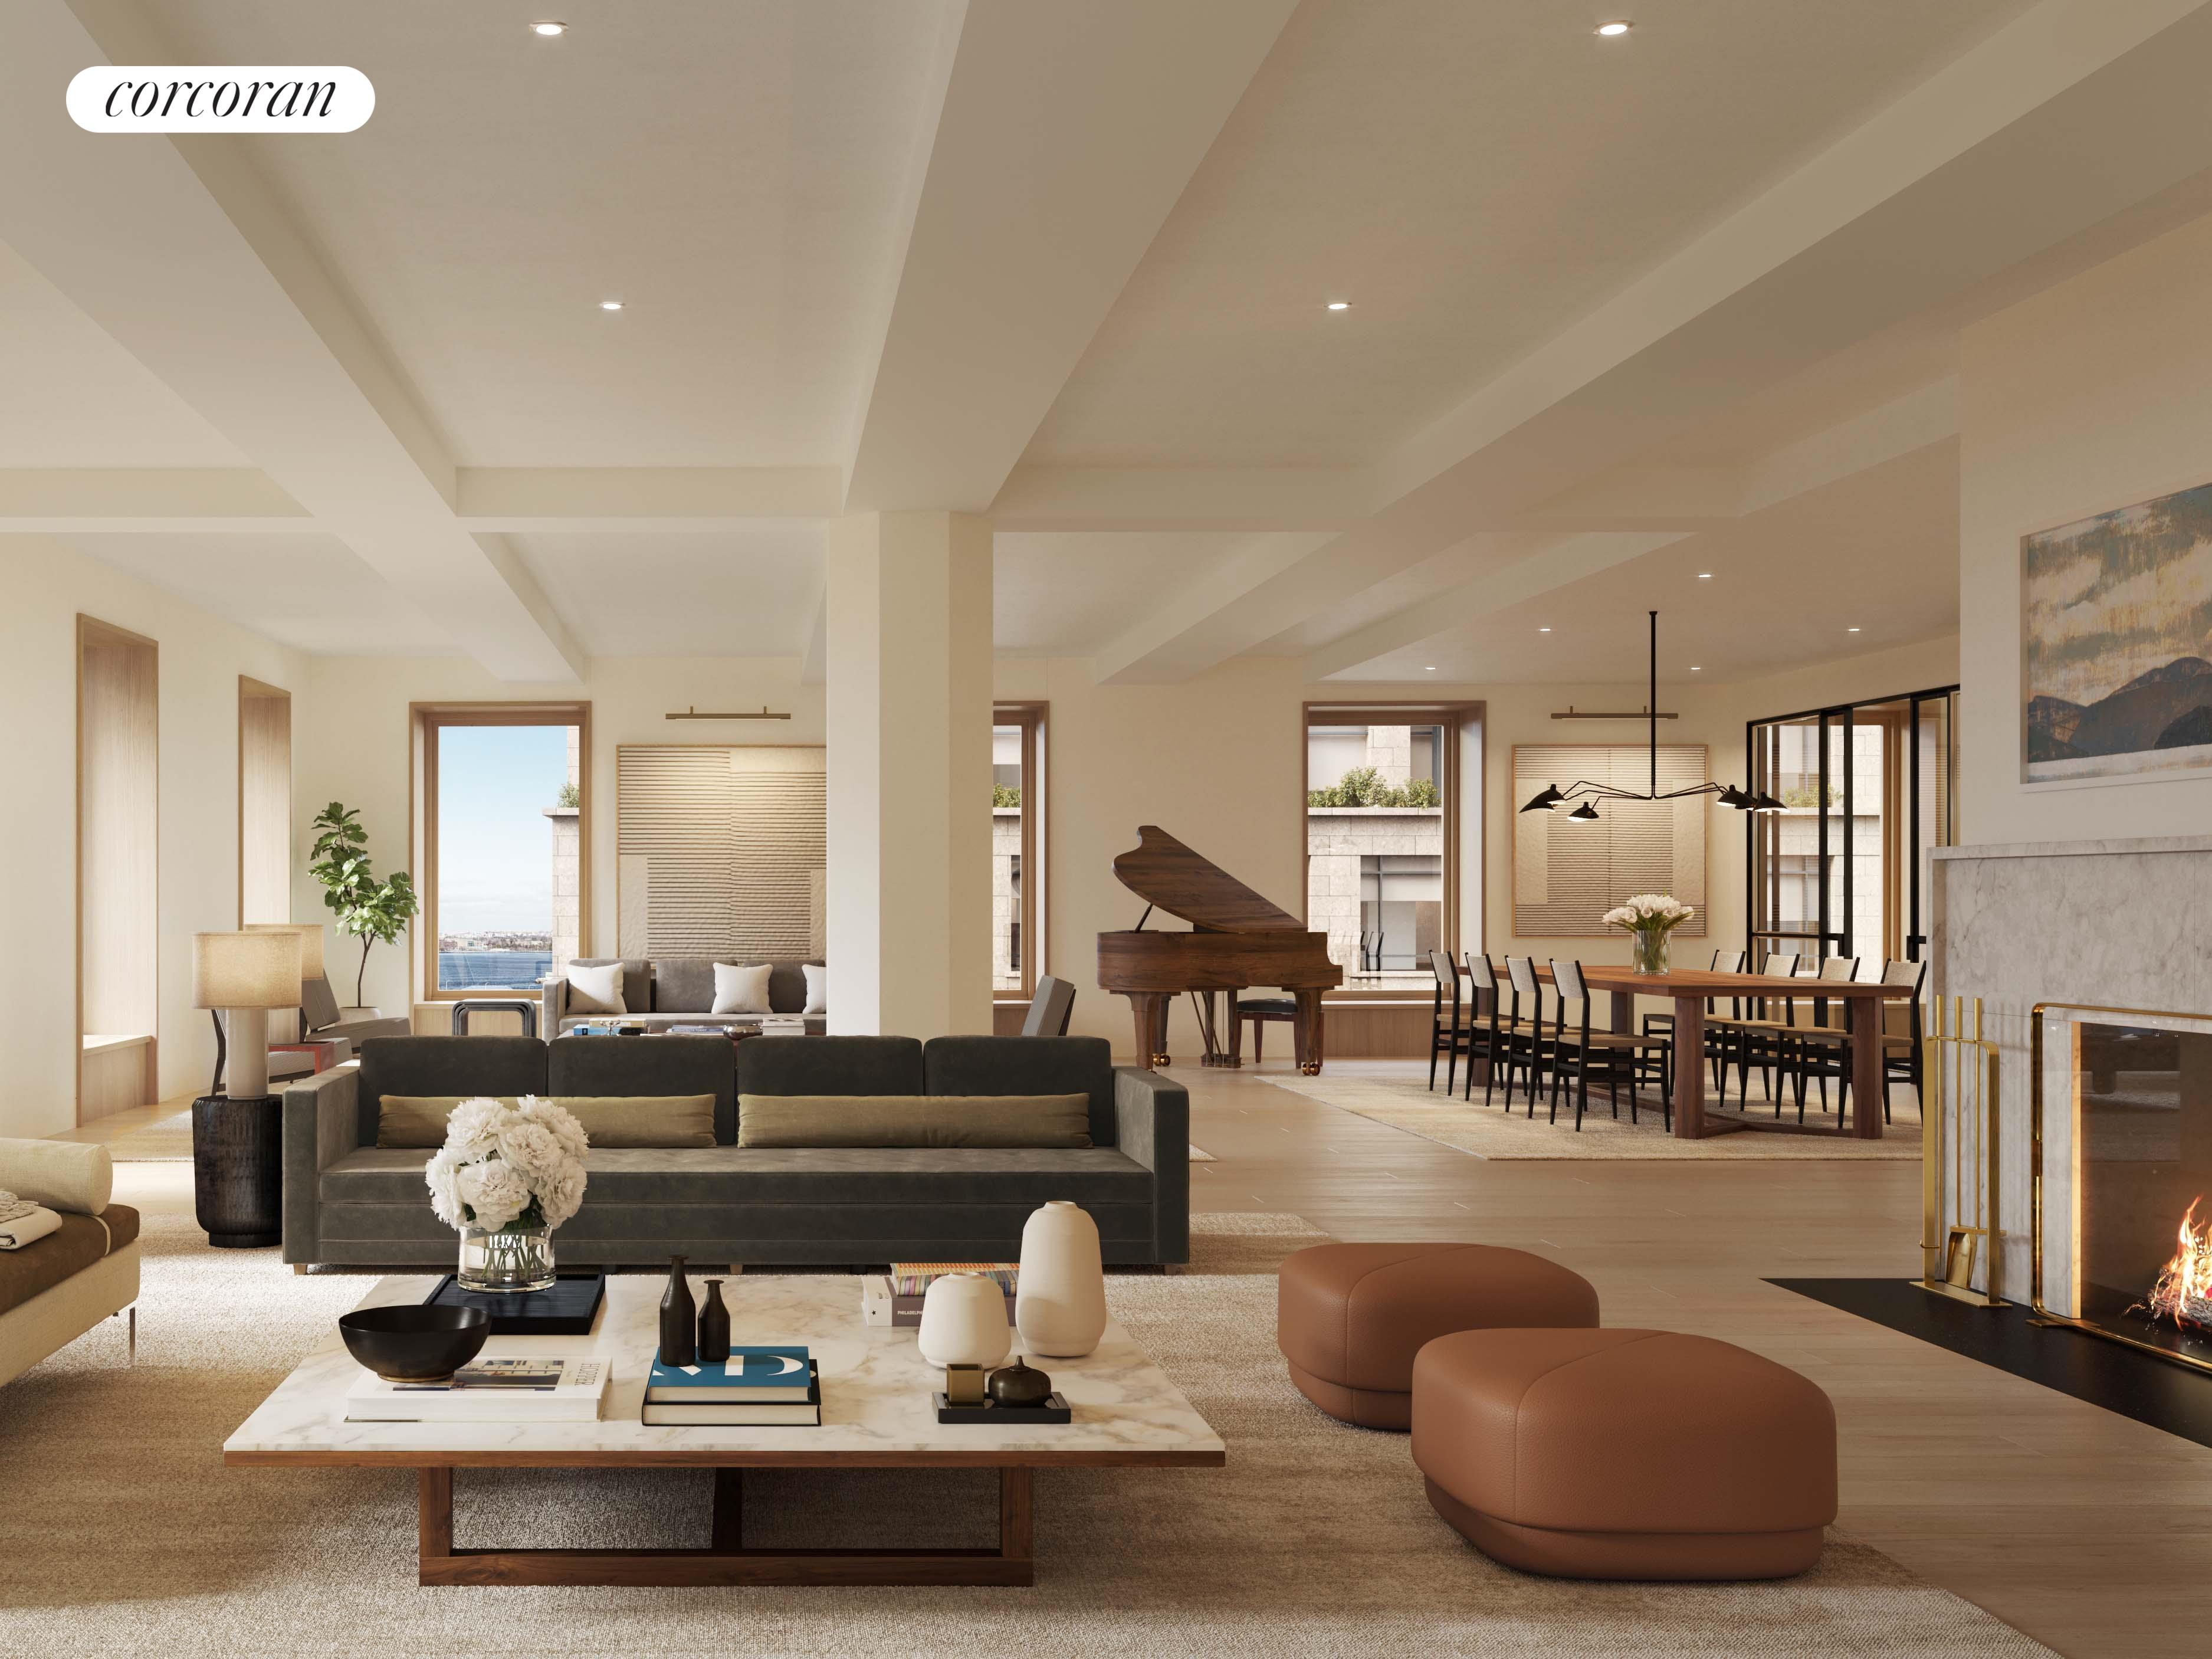 """This magnificent full floor spans 5,794 square feet and enjoys light and views in 4 directions, including over 75 feet of direct Hudson River frontage. This home boasts 20 windows, 16 of which are wood-framed, highly engineered, large-scaled Albertini tilt & turn windows from Italy that enjoy full- or partial- Hudson River views. East and south facing bedrooms have oversized loft-style casement windows. Beamed ceilings are as high as high as 10' 4"""". The loft offers a dramatic corner great room (one of the all-time TriBeCa greats!) with over 1,500 square feet of living-entertaining space, and includes a custom gas fireplace with stone surround, and huge eat-in kitchen-living room with 3 large windows. The kitchen is appointed with brushed oak millwork, thick-slab Pentelico marble countertops with honed finish, a LaCanche range custom made in France, and a suite of Miele appliances. The range hood is fully vented to the outside. The residence has 6 bedrooms, 5-full bathrooms, a Blu de Savoie clad powder room, and a laundry room with sink. The super-luxurious primary suite faces the Hudson River, has 3 walk-in closets, and an over-sized spa-like bathroom with floor-to-ceiling Paonazzozetta honed marble slab walls and floors, a 6-foot Water Monopoly soaking tub, and large shower. Dornbracht fittings throughout and digitally-controlled radiant in-floor heating. Secondary bathrooms are clad in Bianco Dolomiti marble walls and have mosaic tile floors.67 Vestry is one of the last of Tribeca's historic properties, and has been developed into a 13-unit, 12-story condominium, designed by Gachot Studios and BP Architects, and currently under construction. Amenities include a fulltime doorman, porter, fitness center, 50-foot lap pool in a double-height paneled room, sauna and steam areas, package room, bike storage as well as available storage for purchase. 67 Vestry lofts offer Hudson River and sky views. This 1890s Romanesque Revival loft building is developed by Iliad Realty """